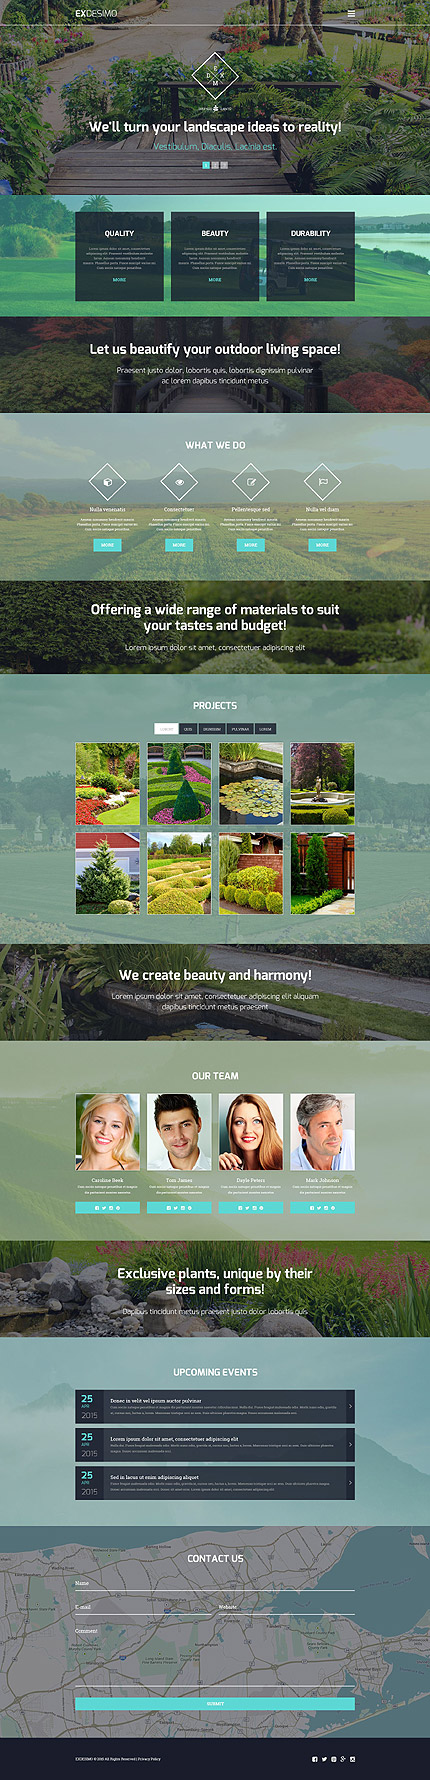 Best WordPress themes - Exterior Design WP Template